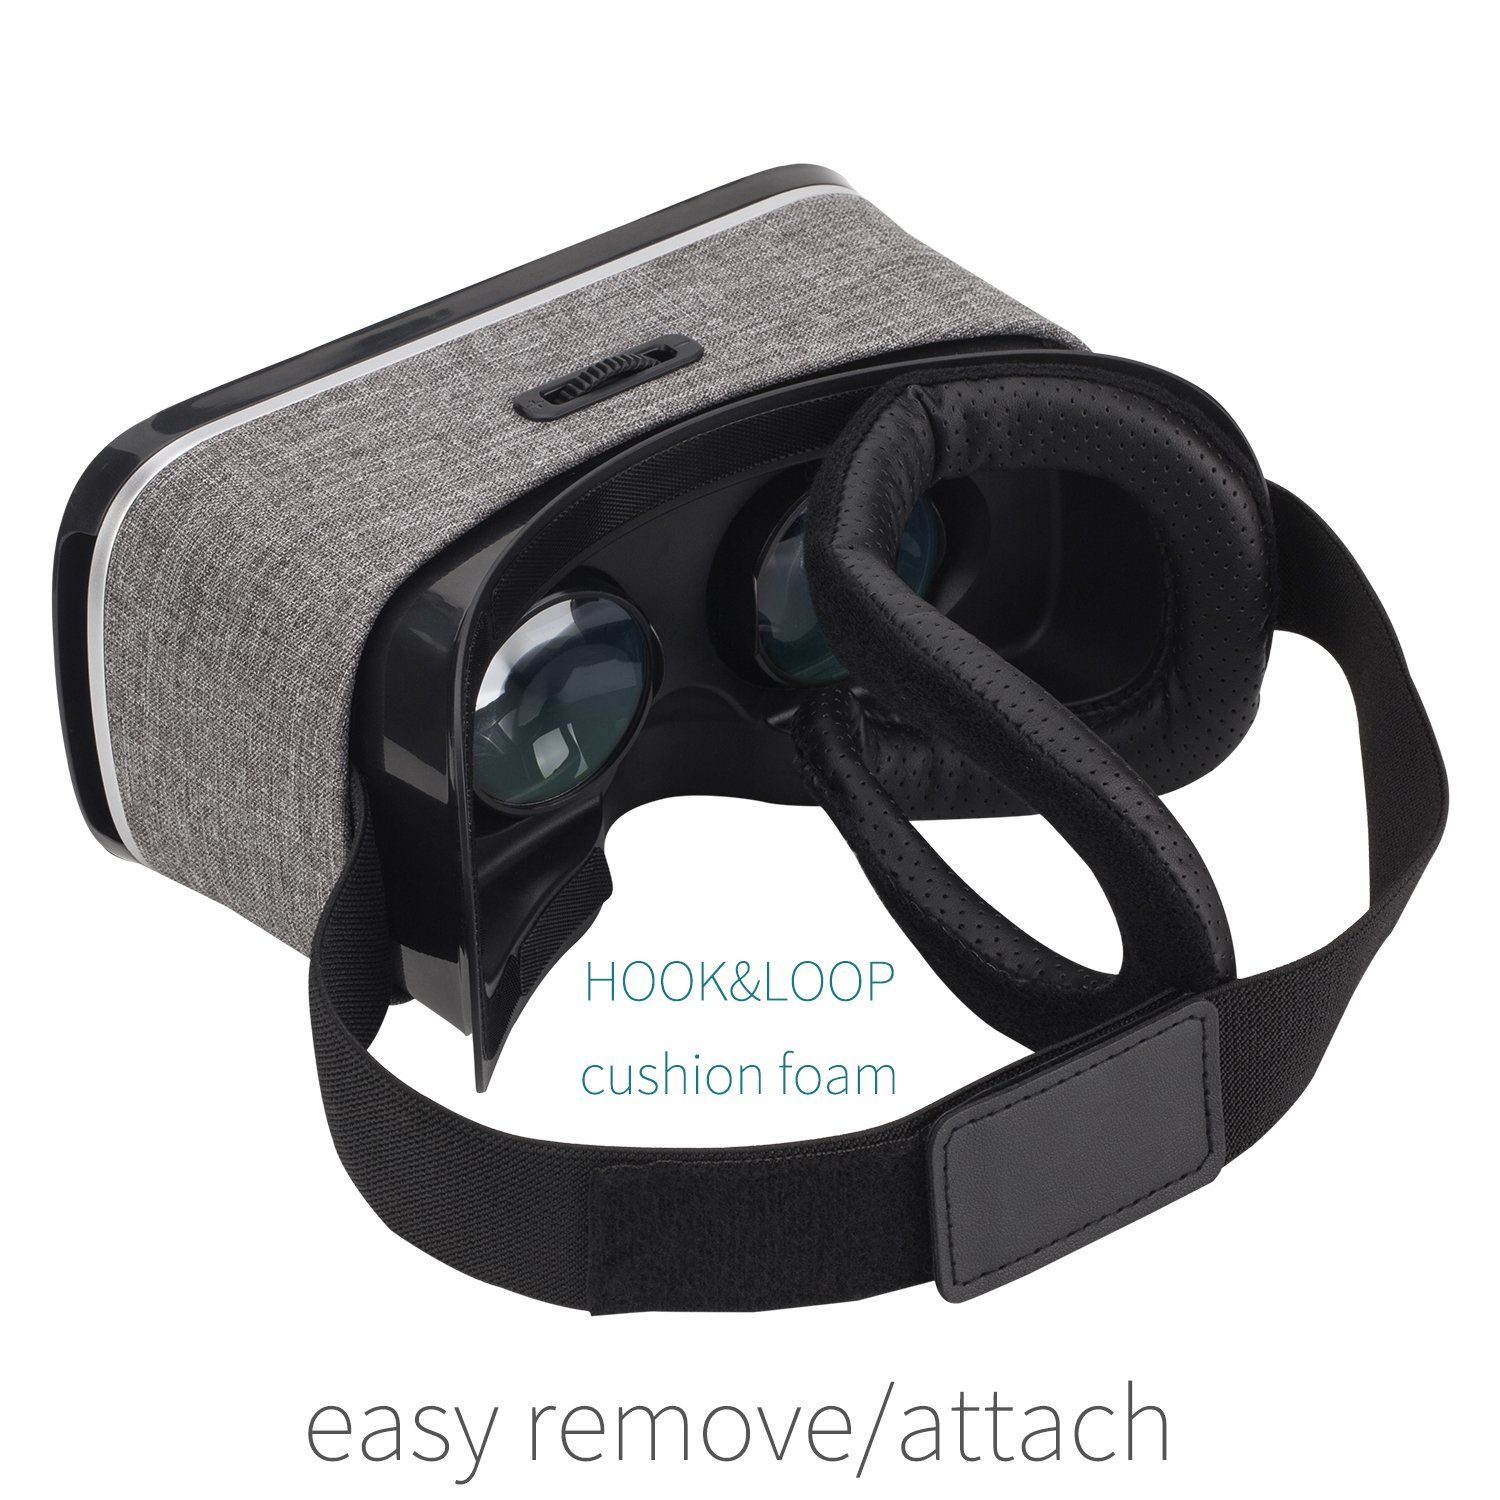 Neutab Vr 2nd Gen Virtual Reality Vr Headset 3d Glasses With Remote Controller 360 Degree Immersive Movies And Games For Ios A Vr Headset Headset Android Phone